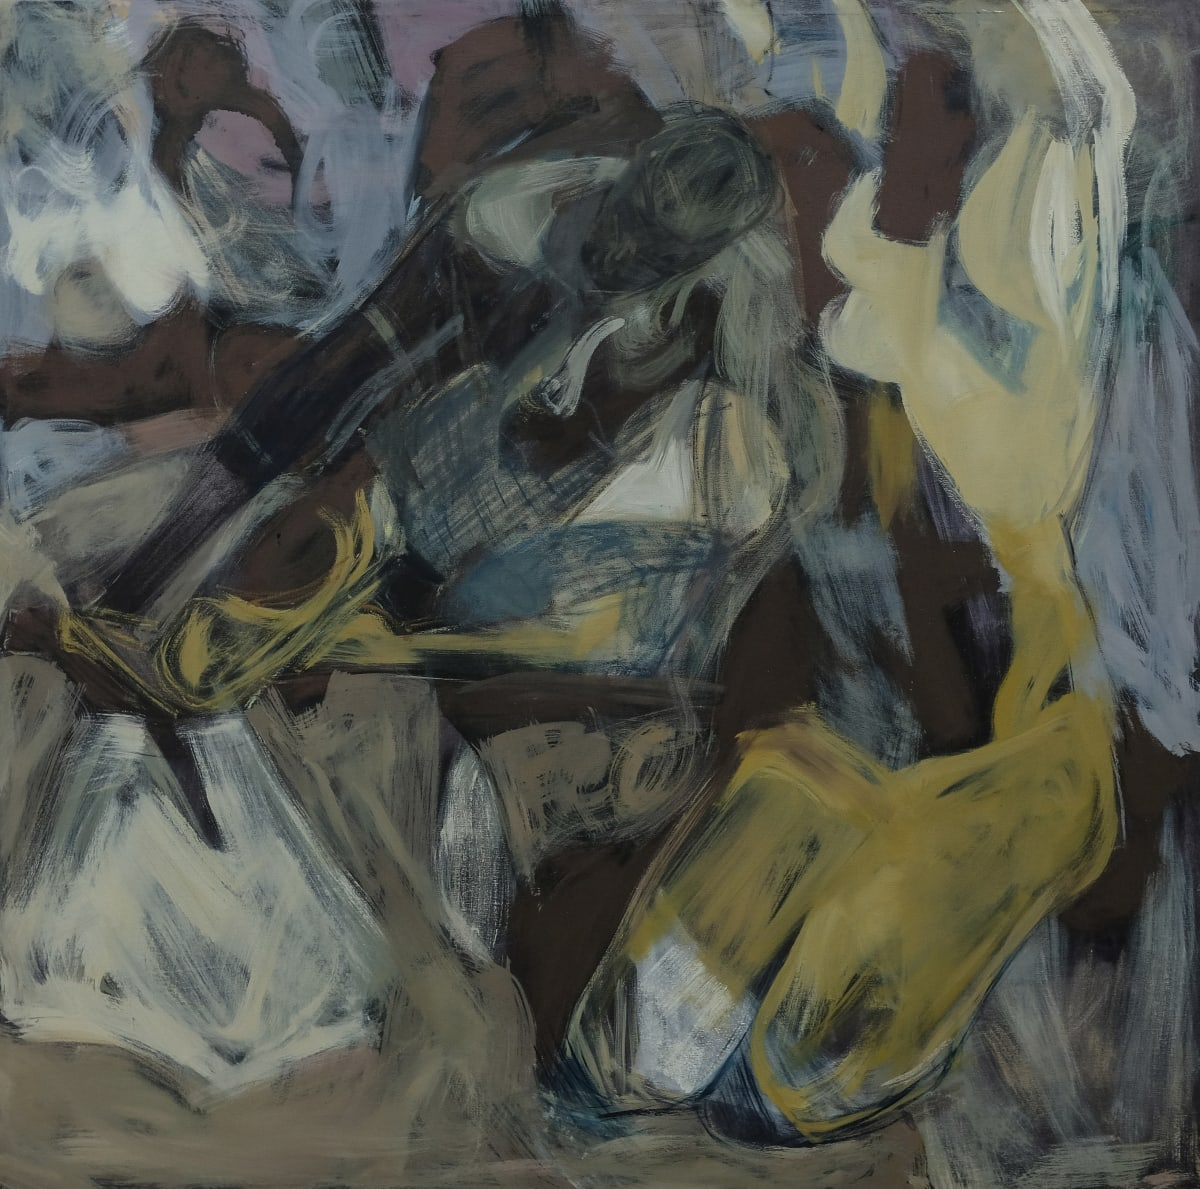 Tizta Berhanu, The Others, 2018